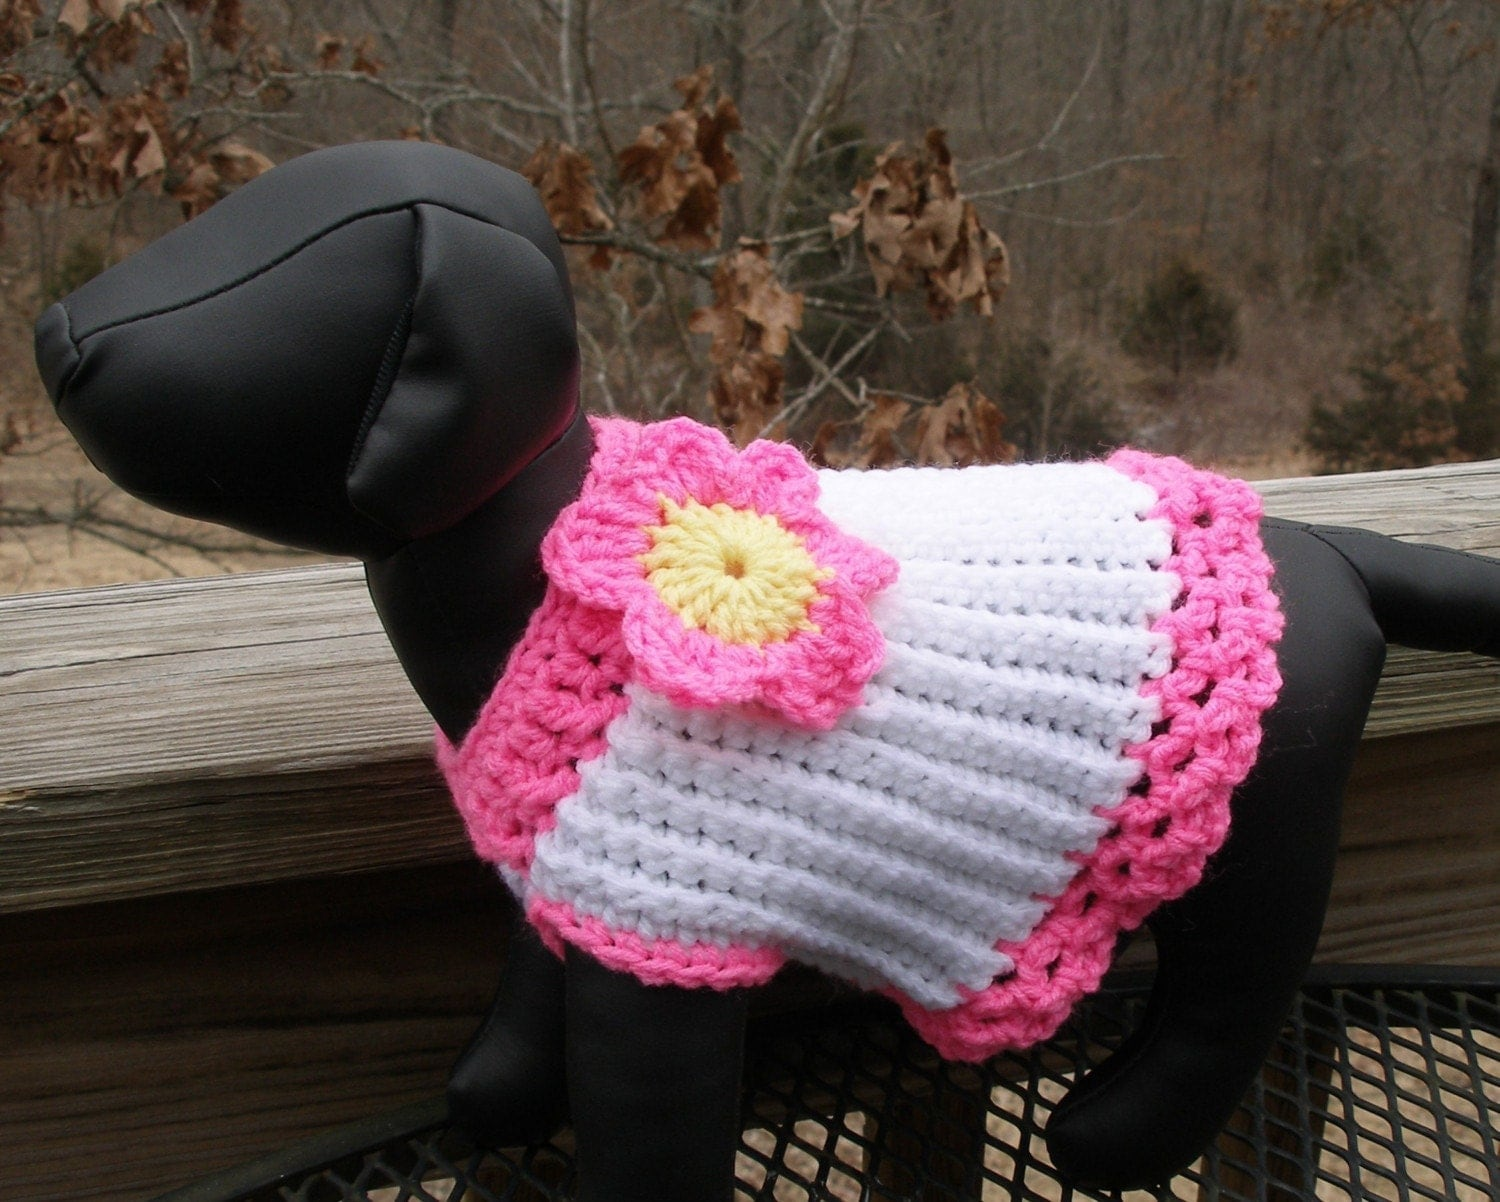 Crochet Pattern For Yorkie Sweater : easy yorkie dog sweater free crochet pattern from the pets